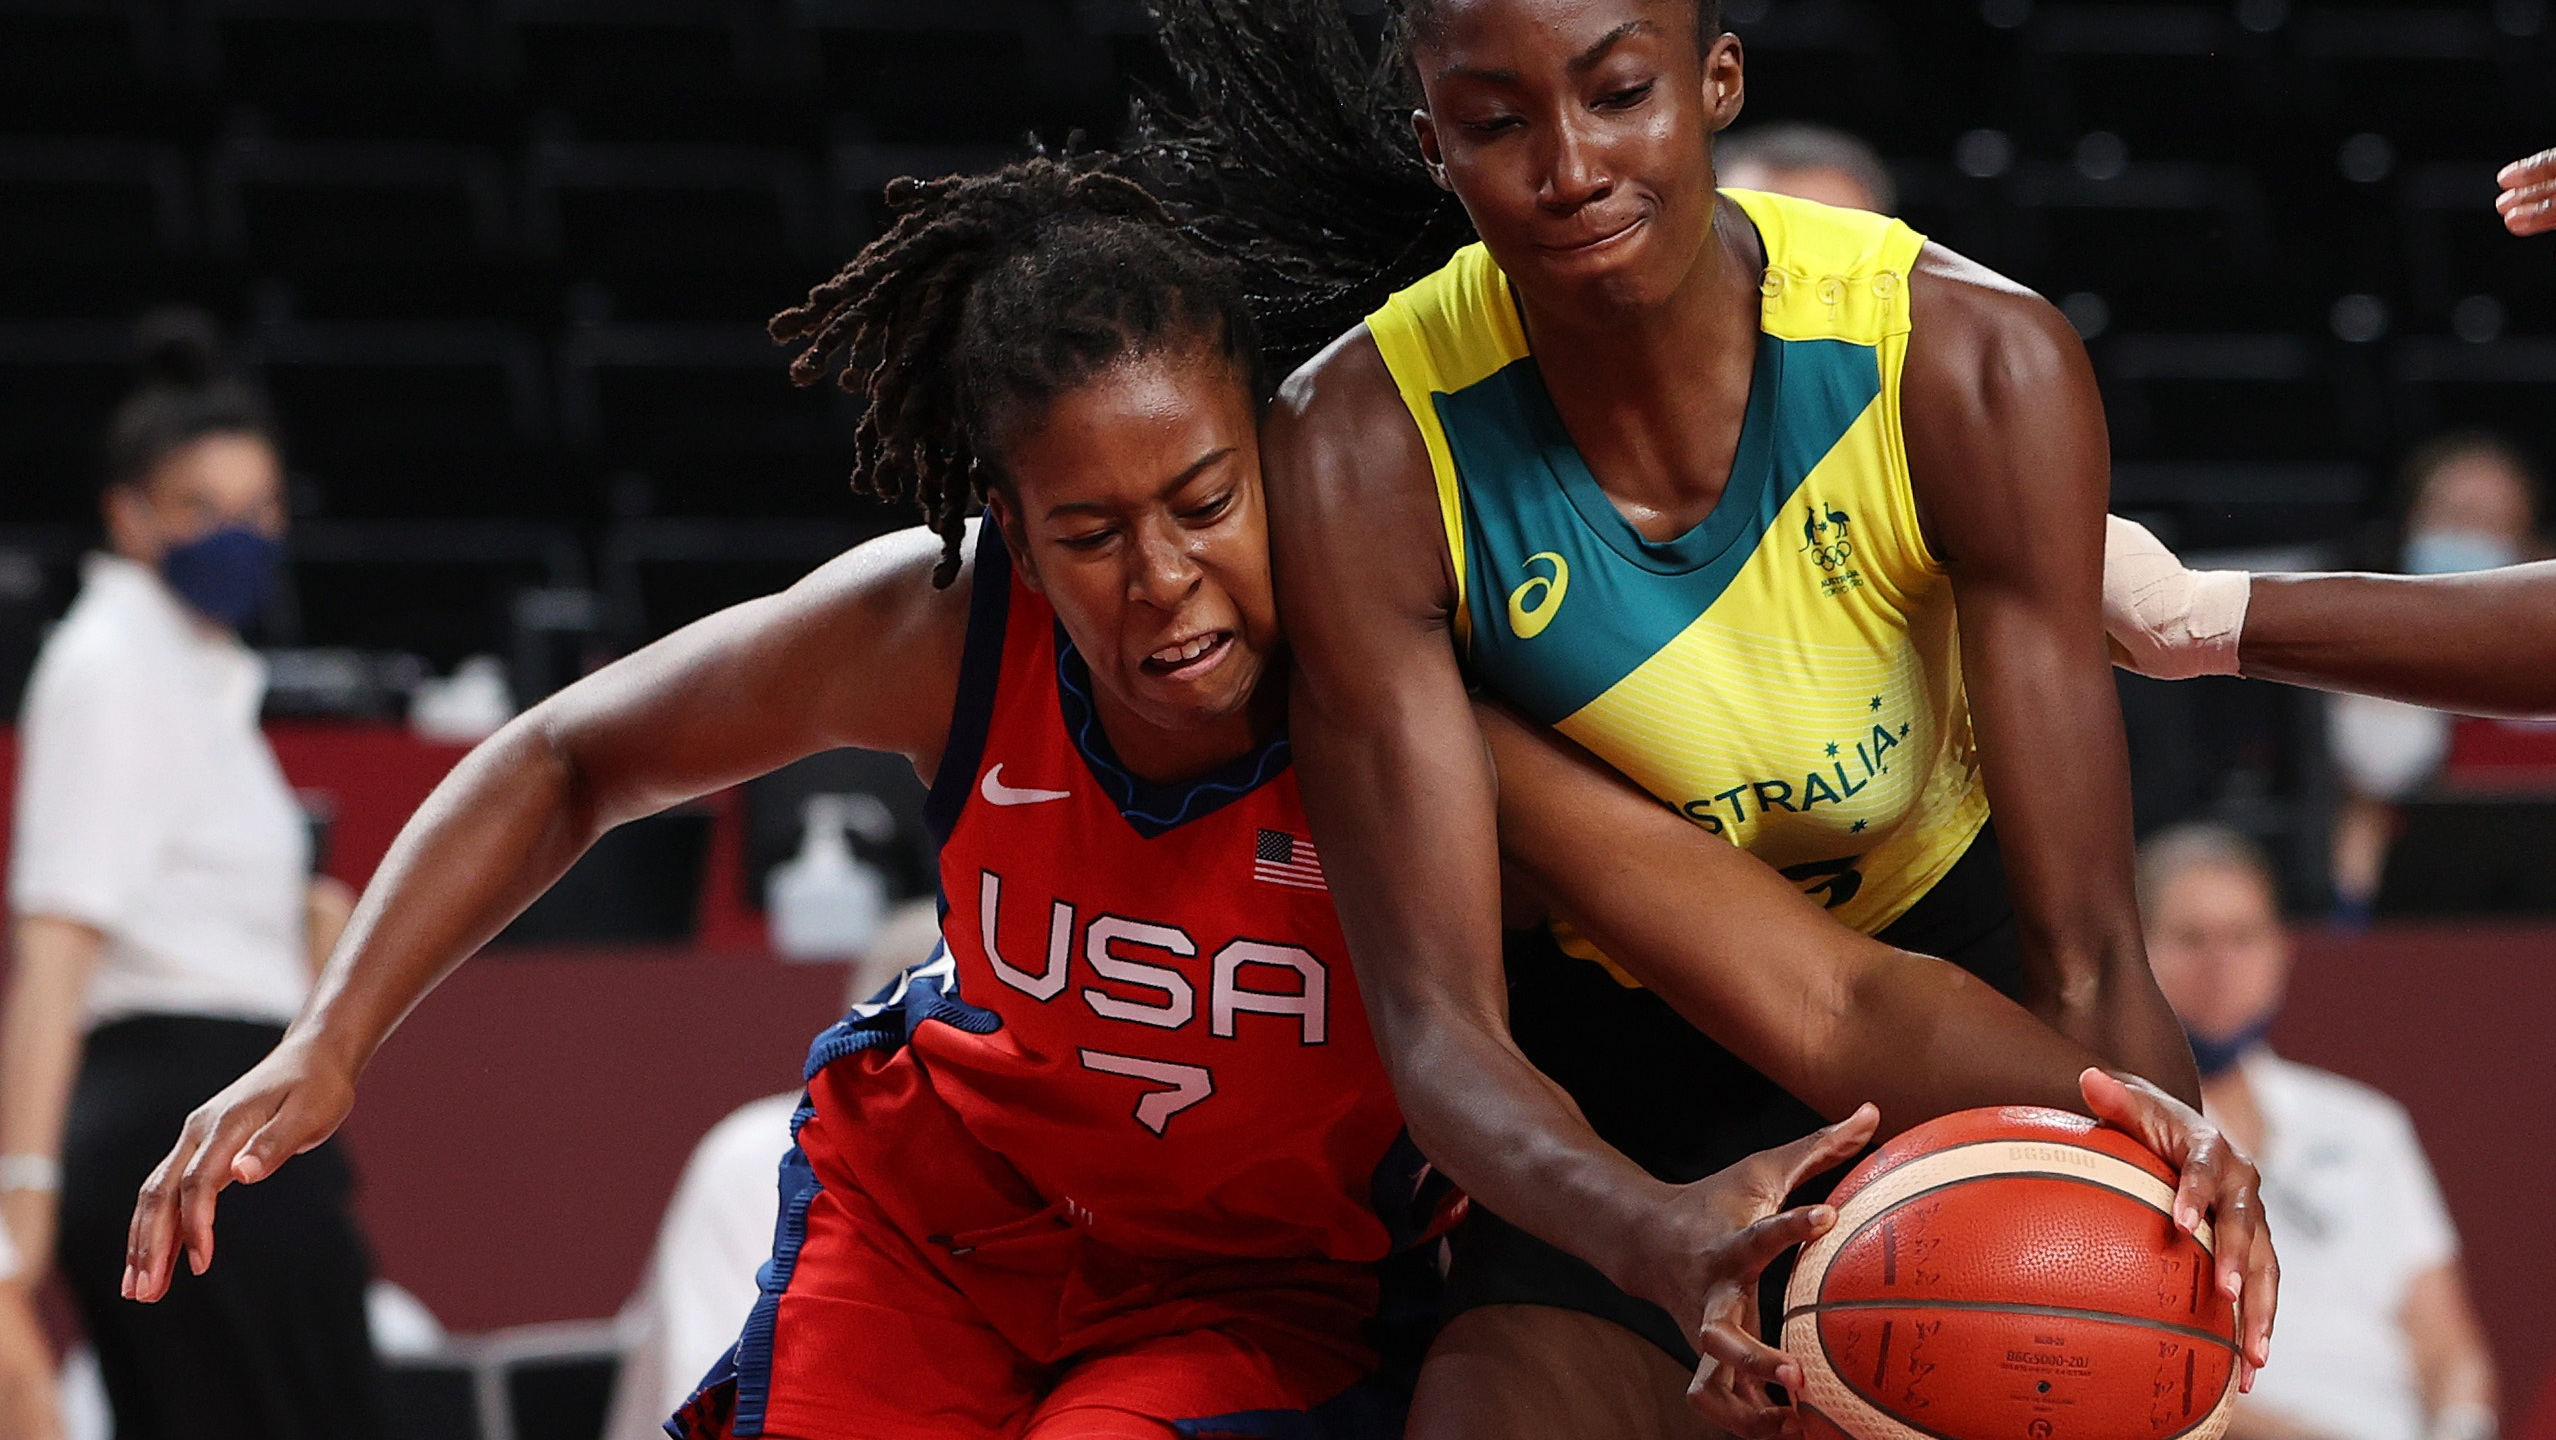 SAITAMA, JAPAN - AUGUST 04: Ariel Atkins #7 of Team United States and Ezi Magbegor #13 of Team Australia fight for possession during the second half of a Women's Basketball Quarterfinals game on day twelve of the Tokyo 2020 Olympic Games at Saitama Super Arena on August 04, 2021 in Saitama, Japan. (Photo by Kevin C. Cox/Getty Images)